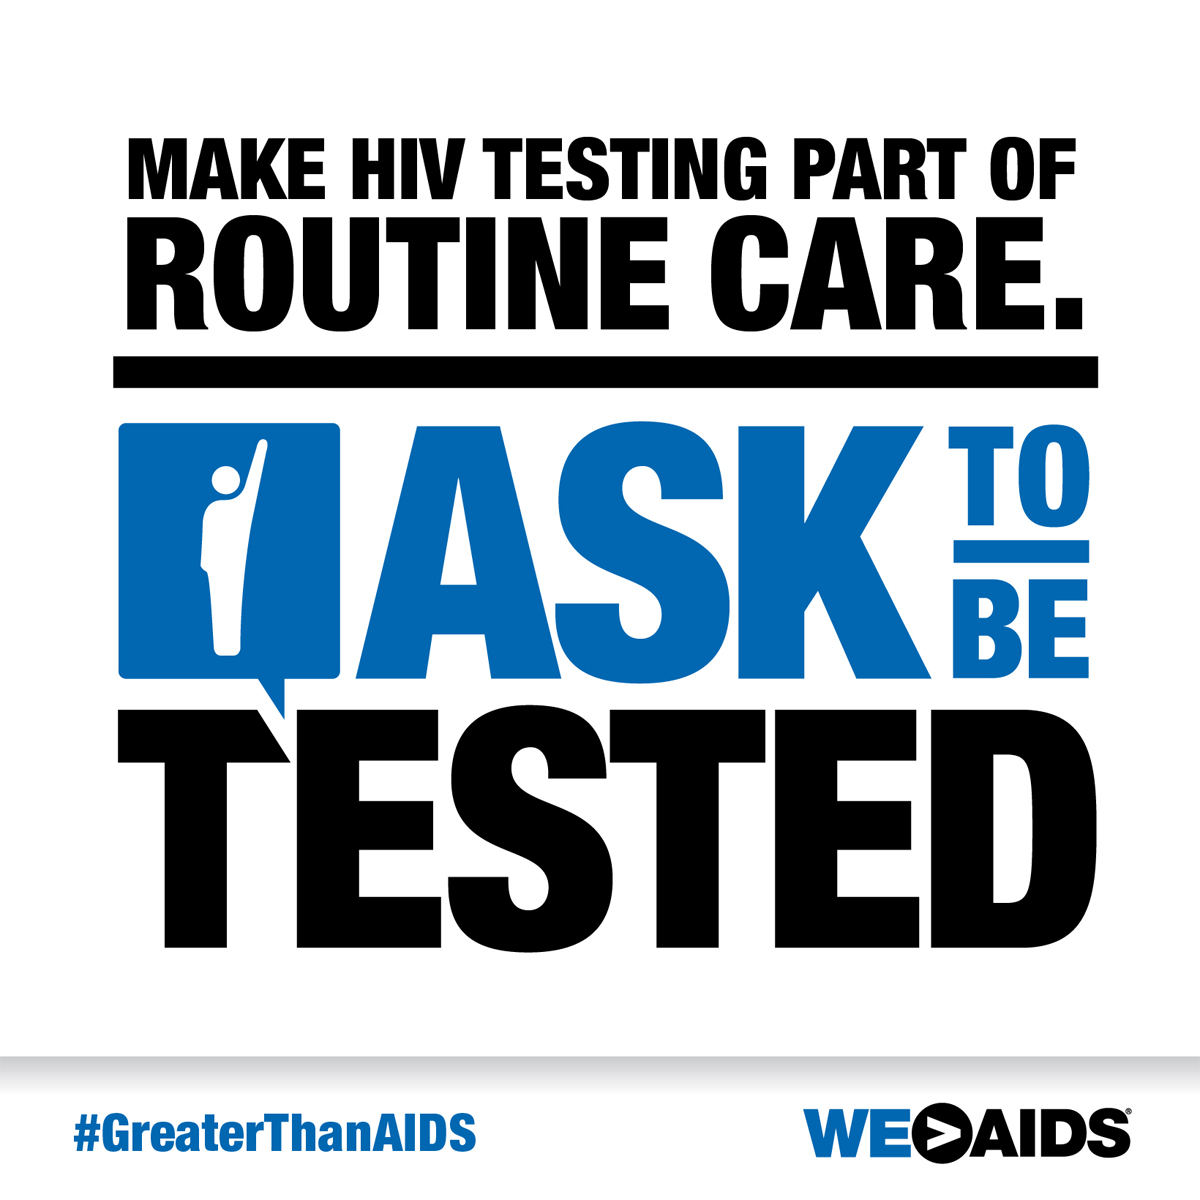 Greater Than AIDS Make HIV Testing Part of Routine Care. Ask to be tested Logo